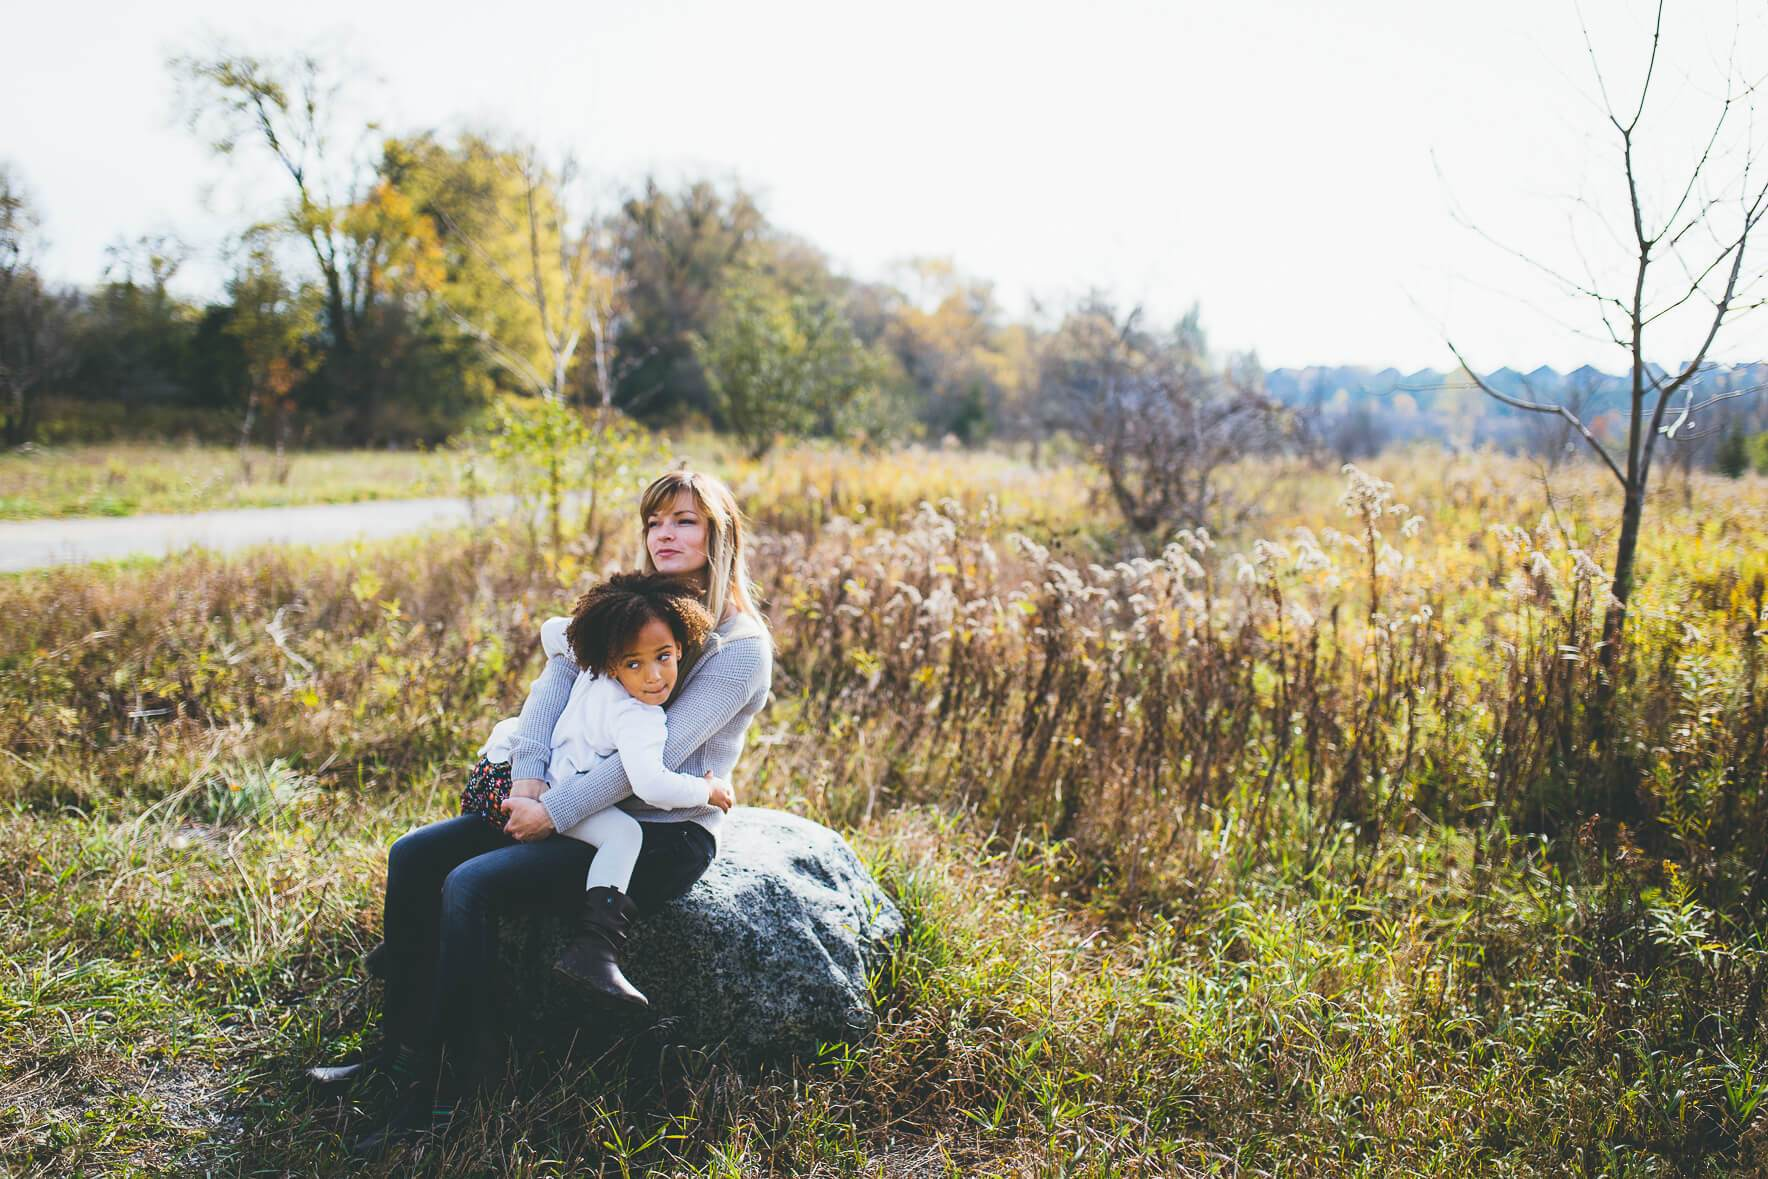 Mom sitting on a rock in a field and hugging her daughter